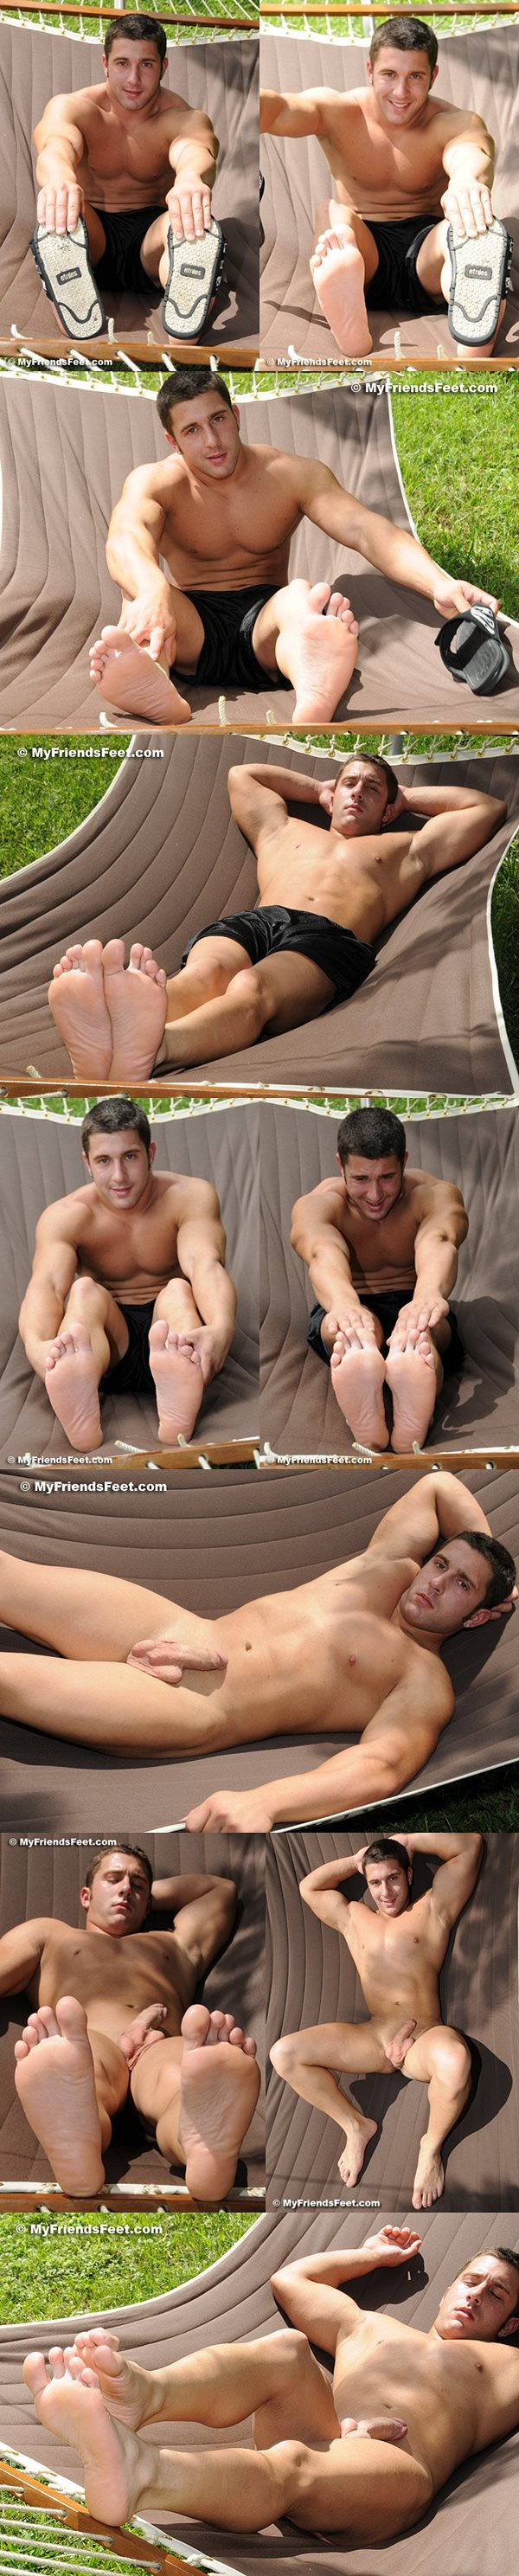 Handsome muscle jock Tad gets his big feet worshiped and tickled at Myfriendsfeet